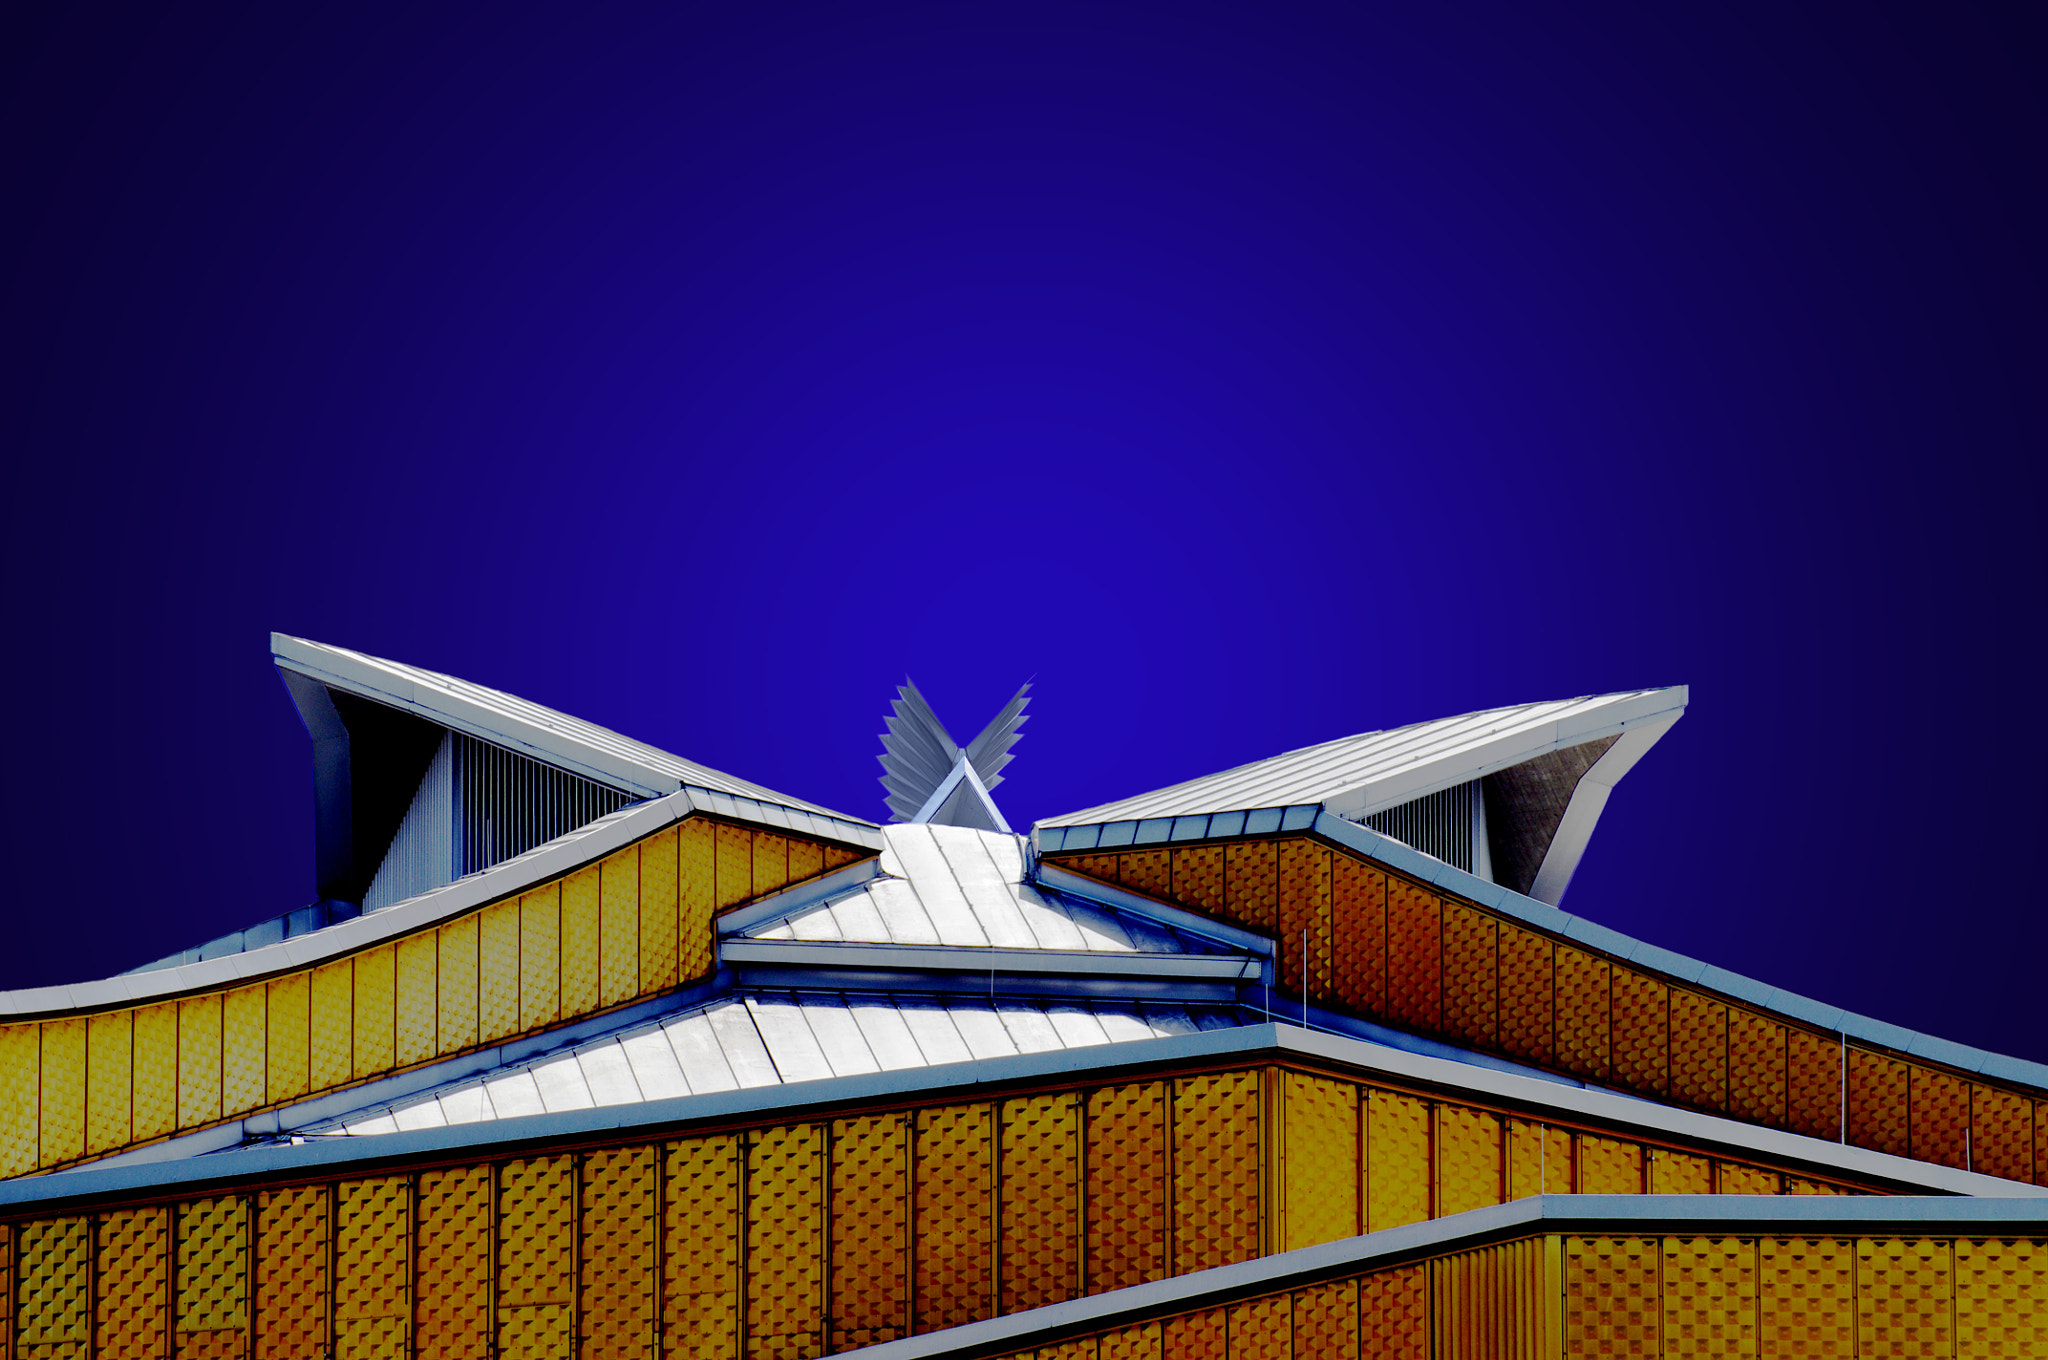 Photograph Philharmonie by Michael Köster on 500px